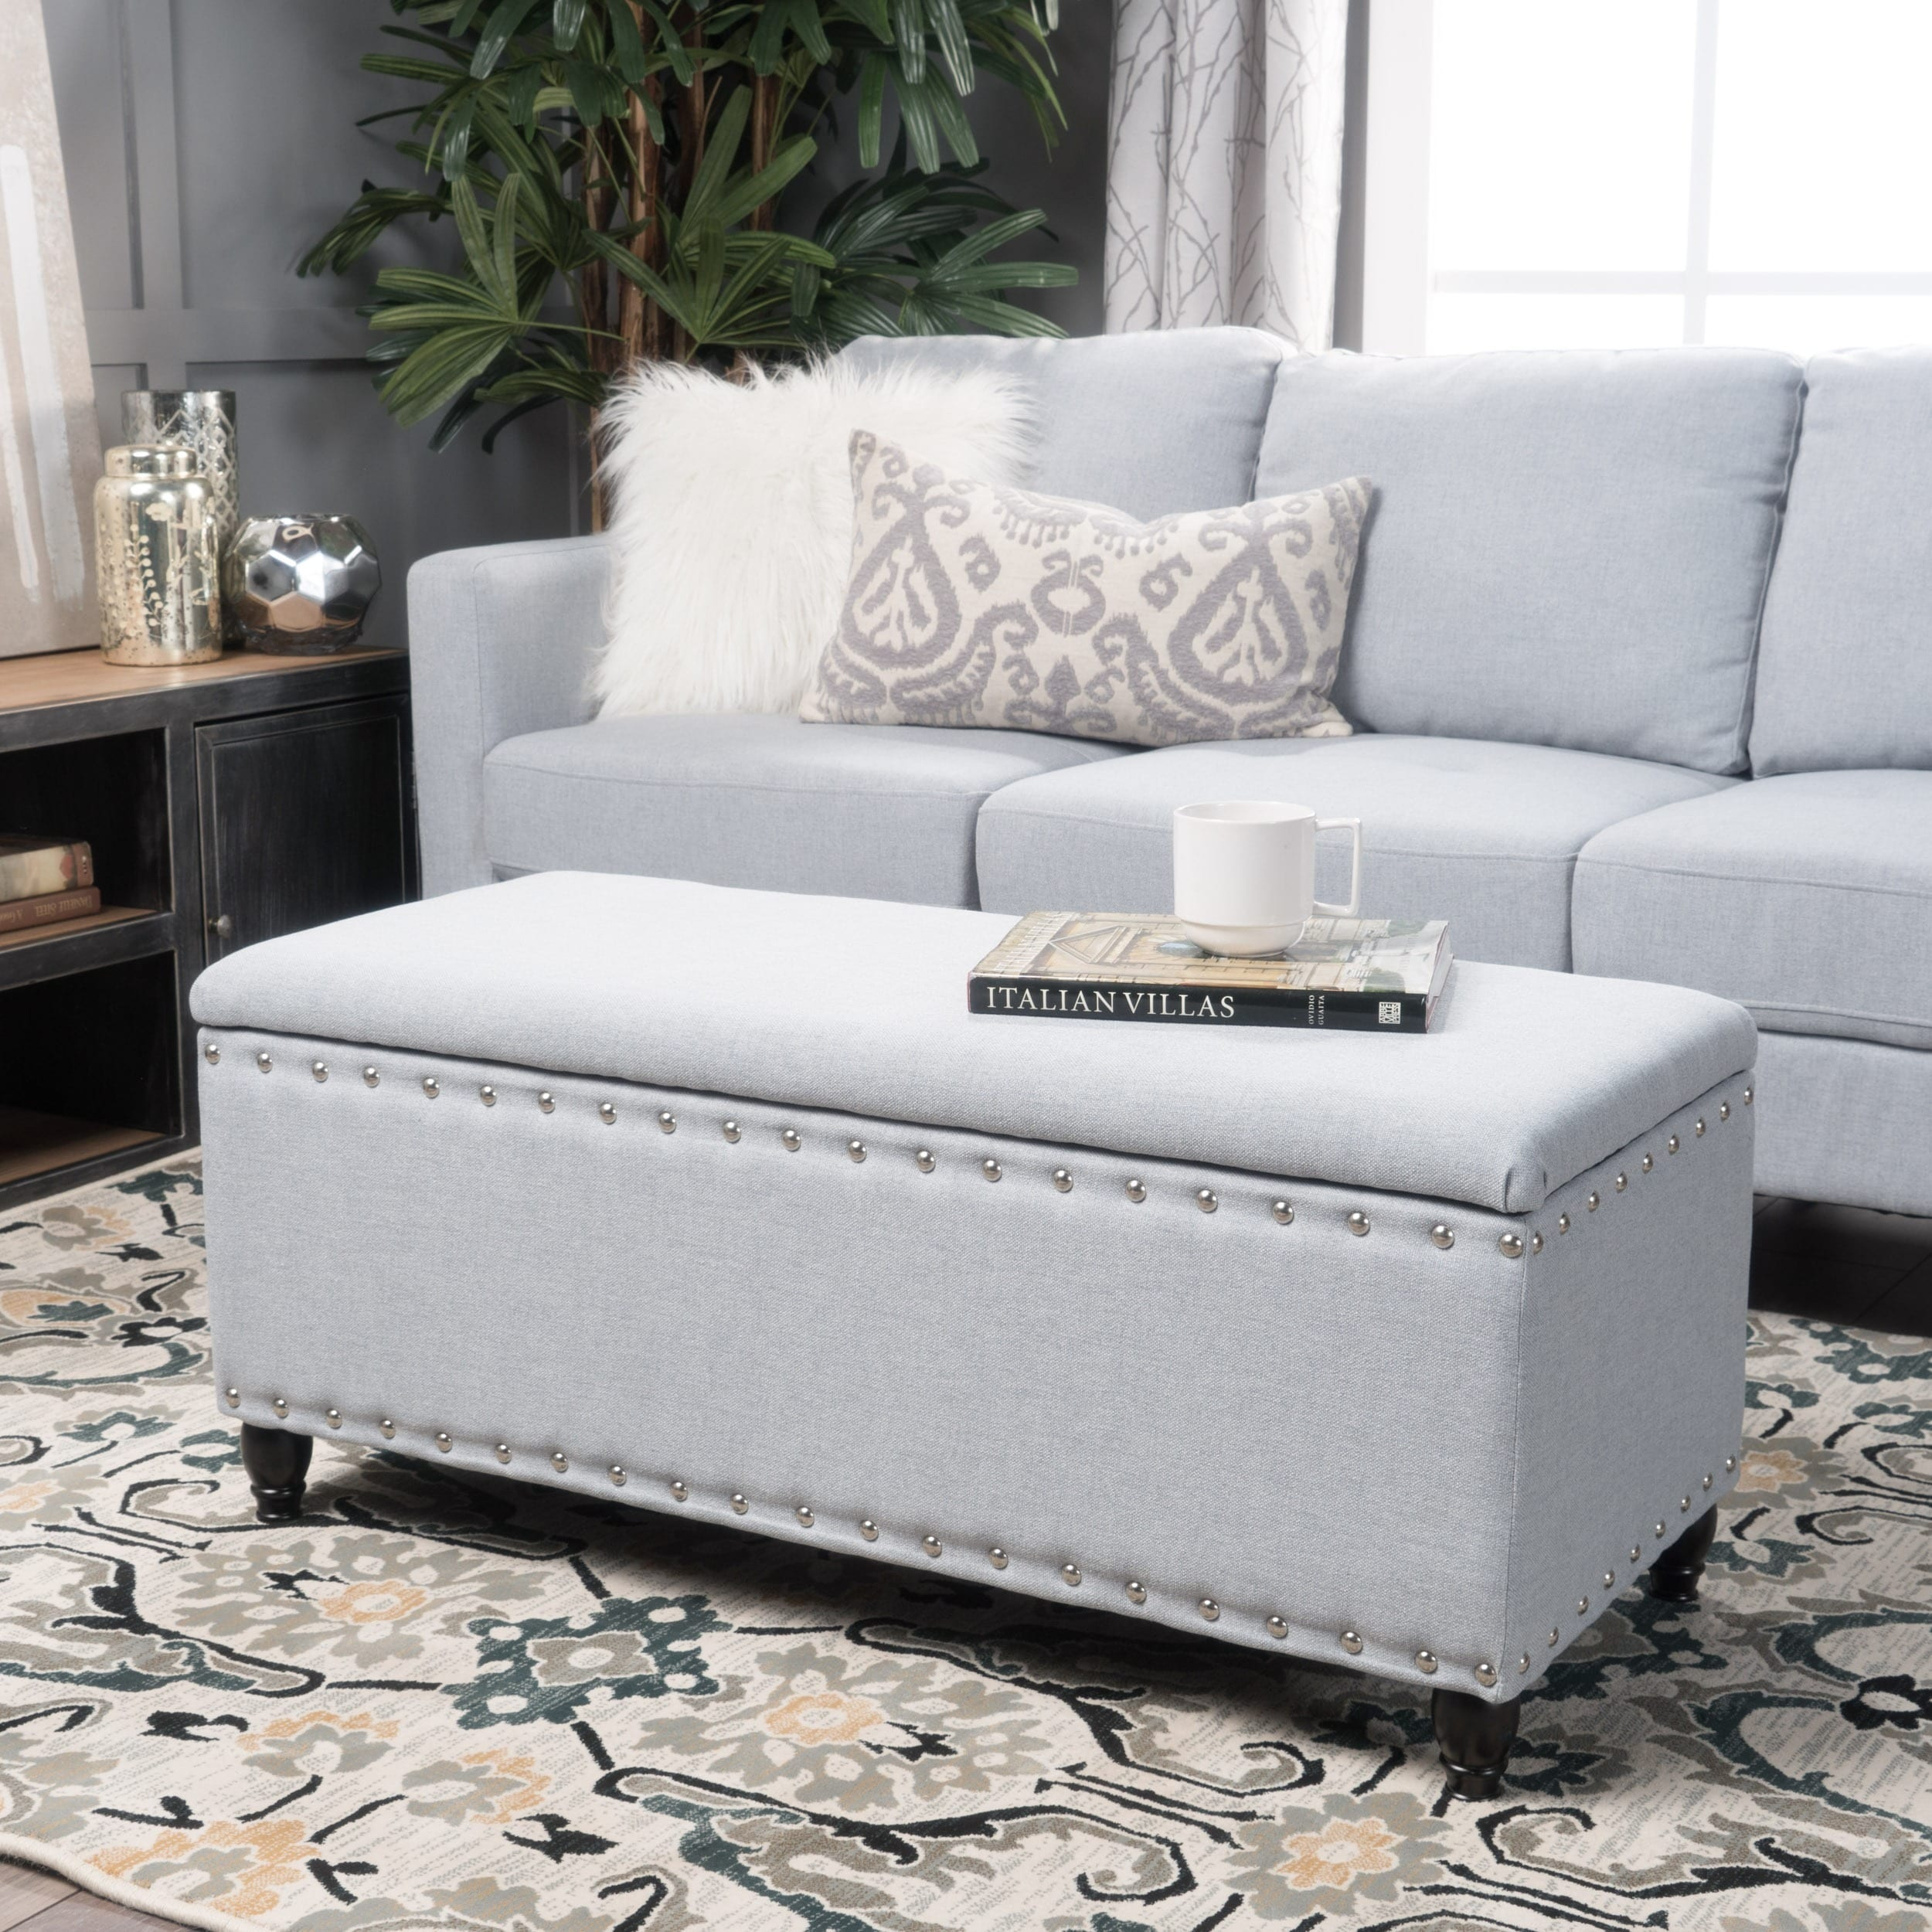 Strange Buy Foot Stool Online At Overstock Our Best Living Room Camellatalisay Diy Chair Ideas Camellatalisaycom